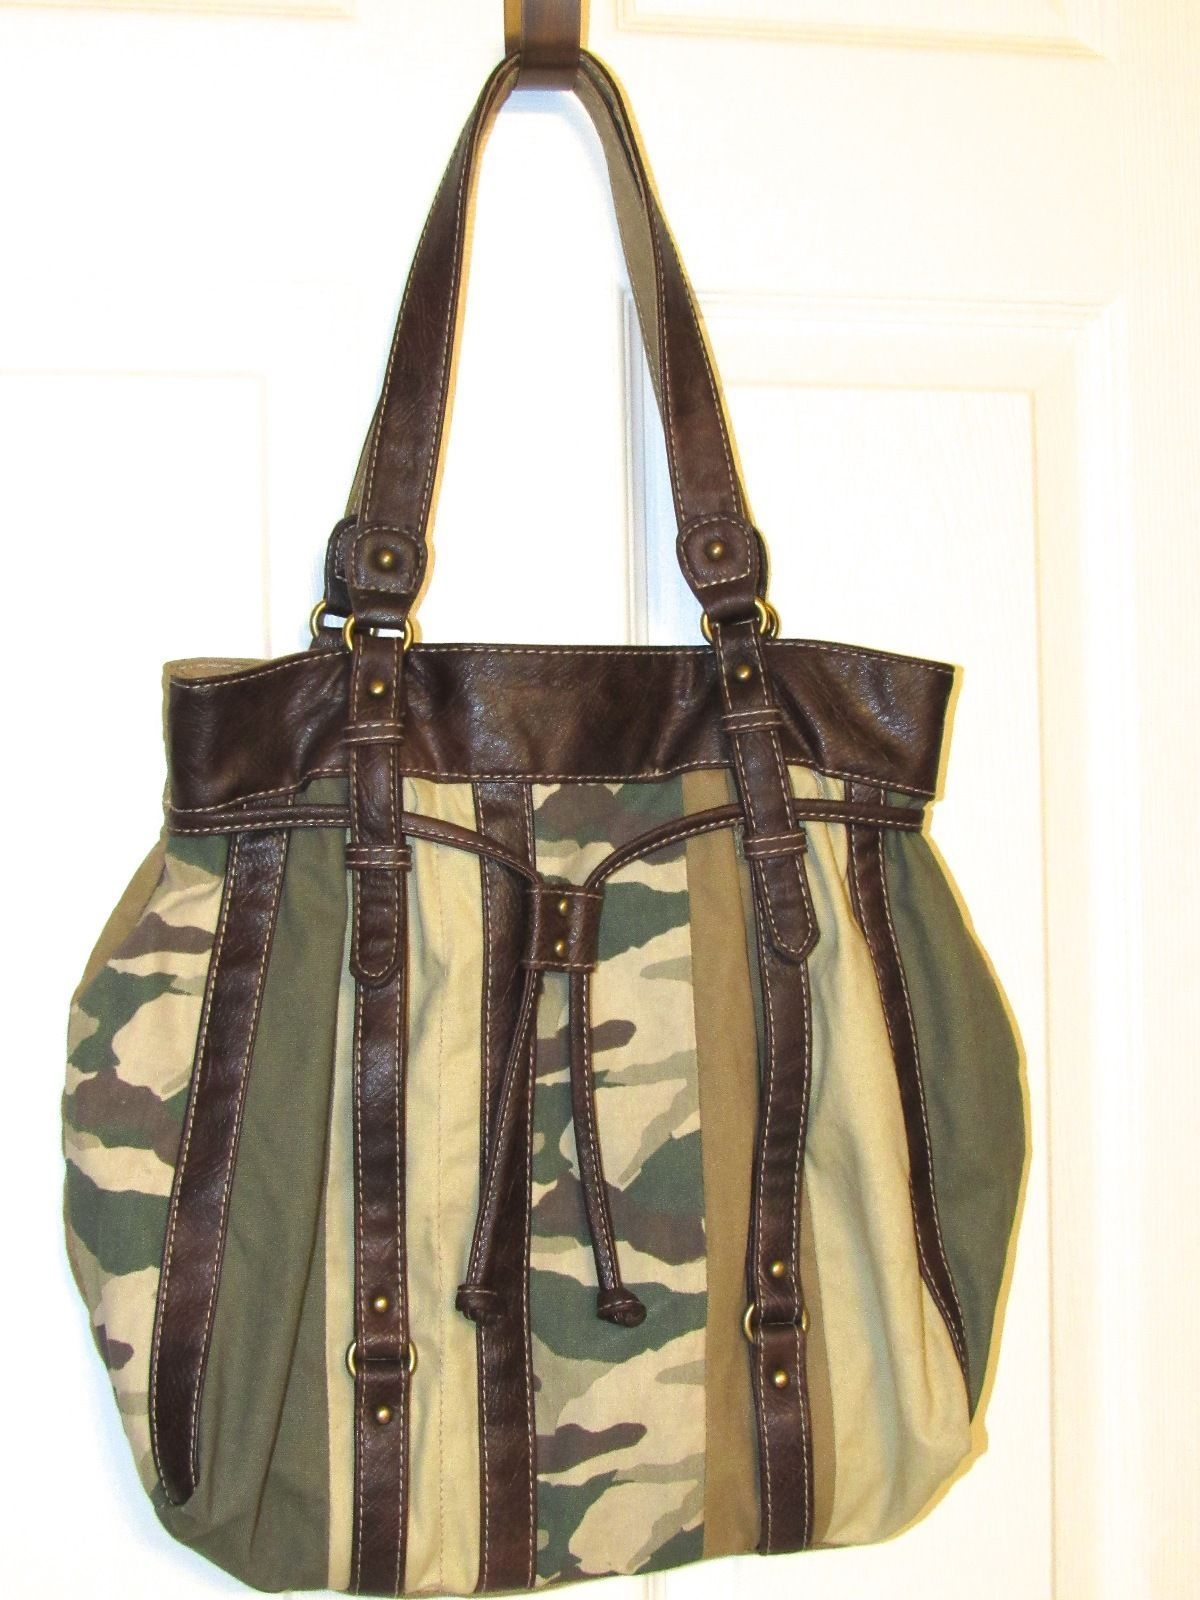 Chateau Camouflage and Faux Leather Military Hobo Bag - Multi-Color